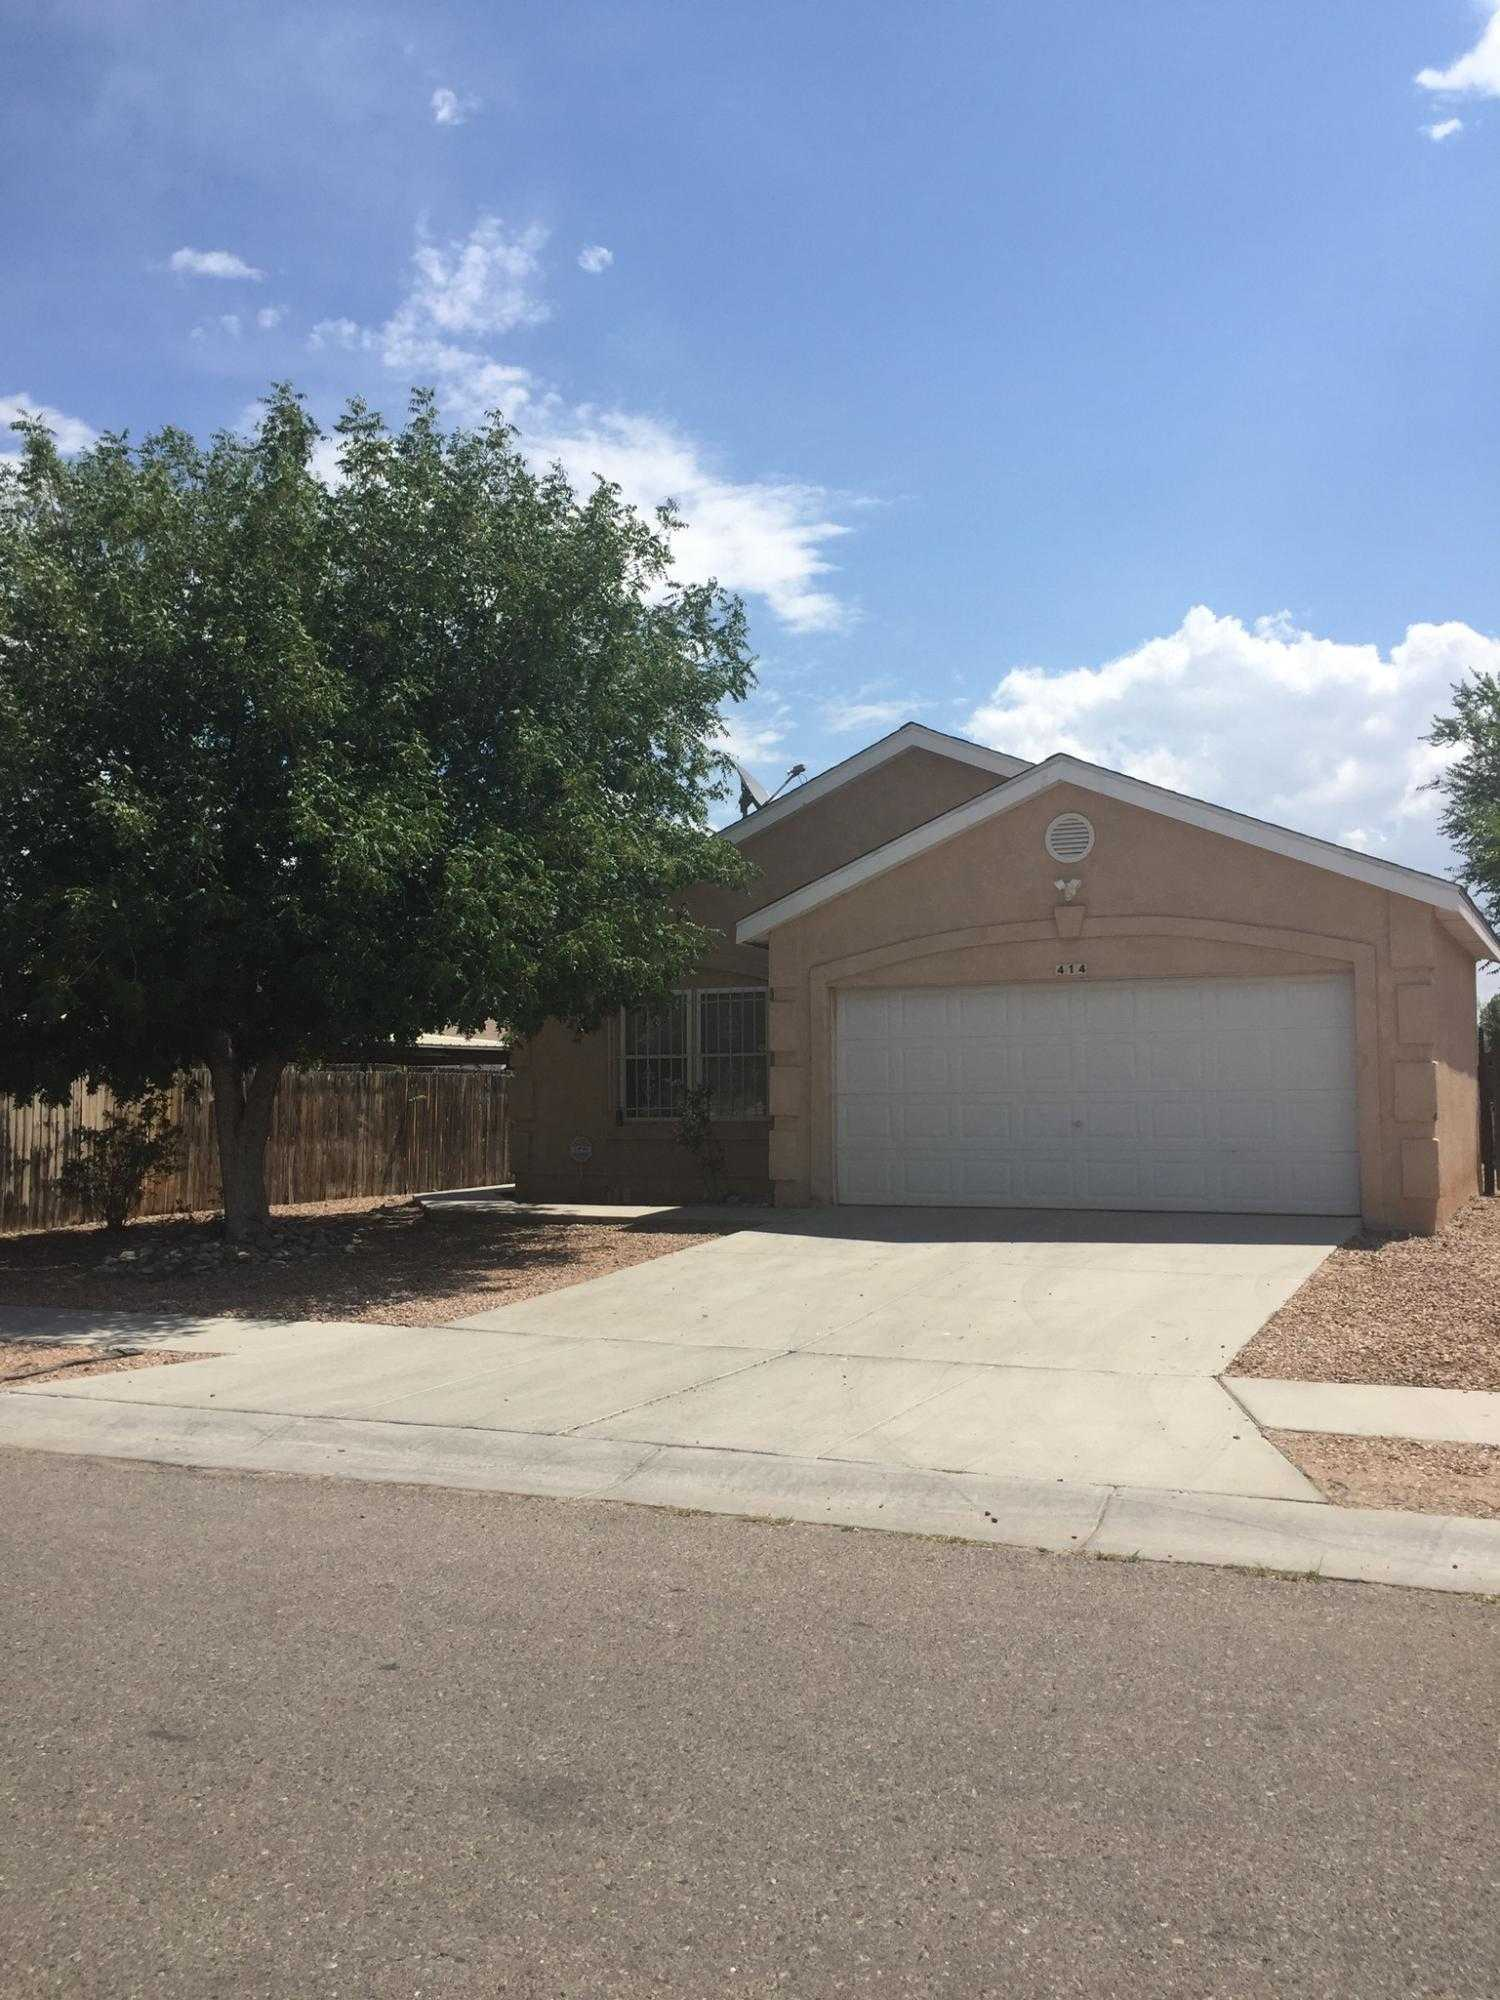 $69,000 - 3Br/2Ba -  for Sale in Valhalla Estates, Albuquerque